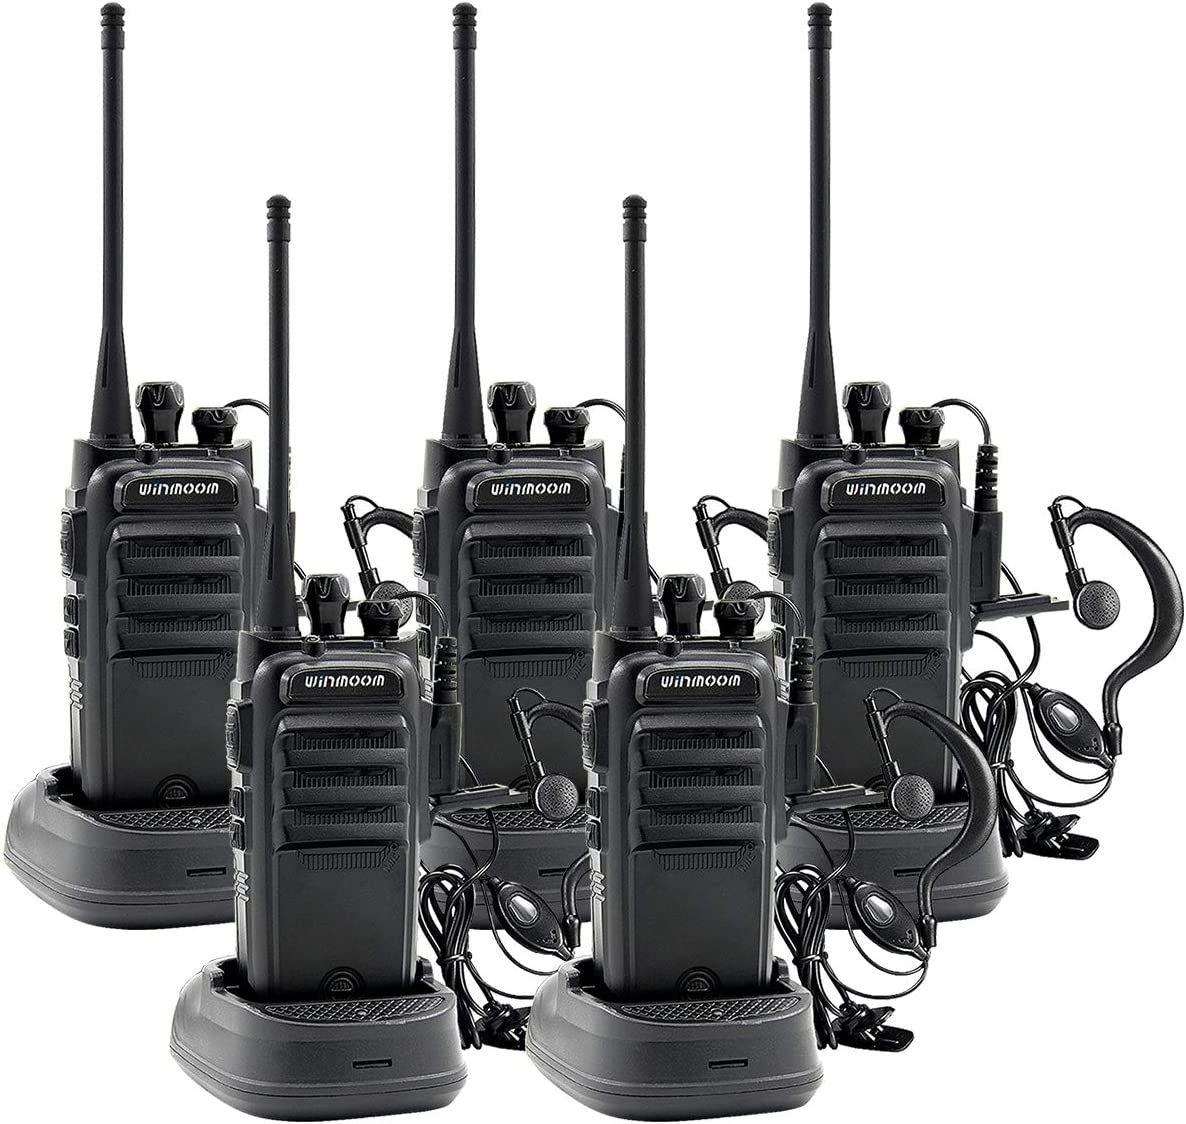 Winmoom Adult walkie talkies Rechargeable Long Range Two-Way Radios with Earpiece 5 Pack UHF 400-480Mhz 1800mAh Li-ion Battery and Charger Included